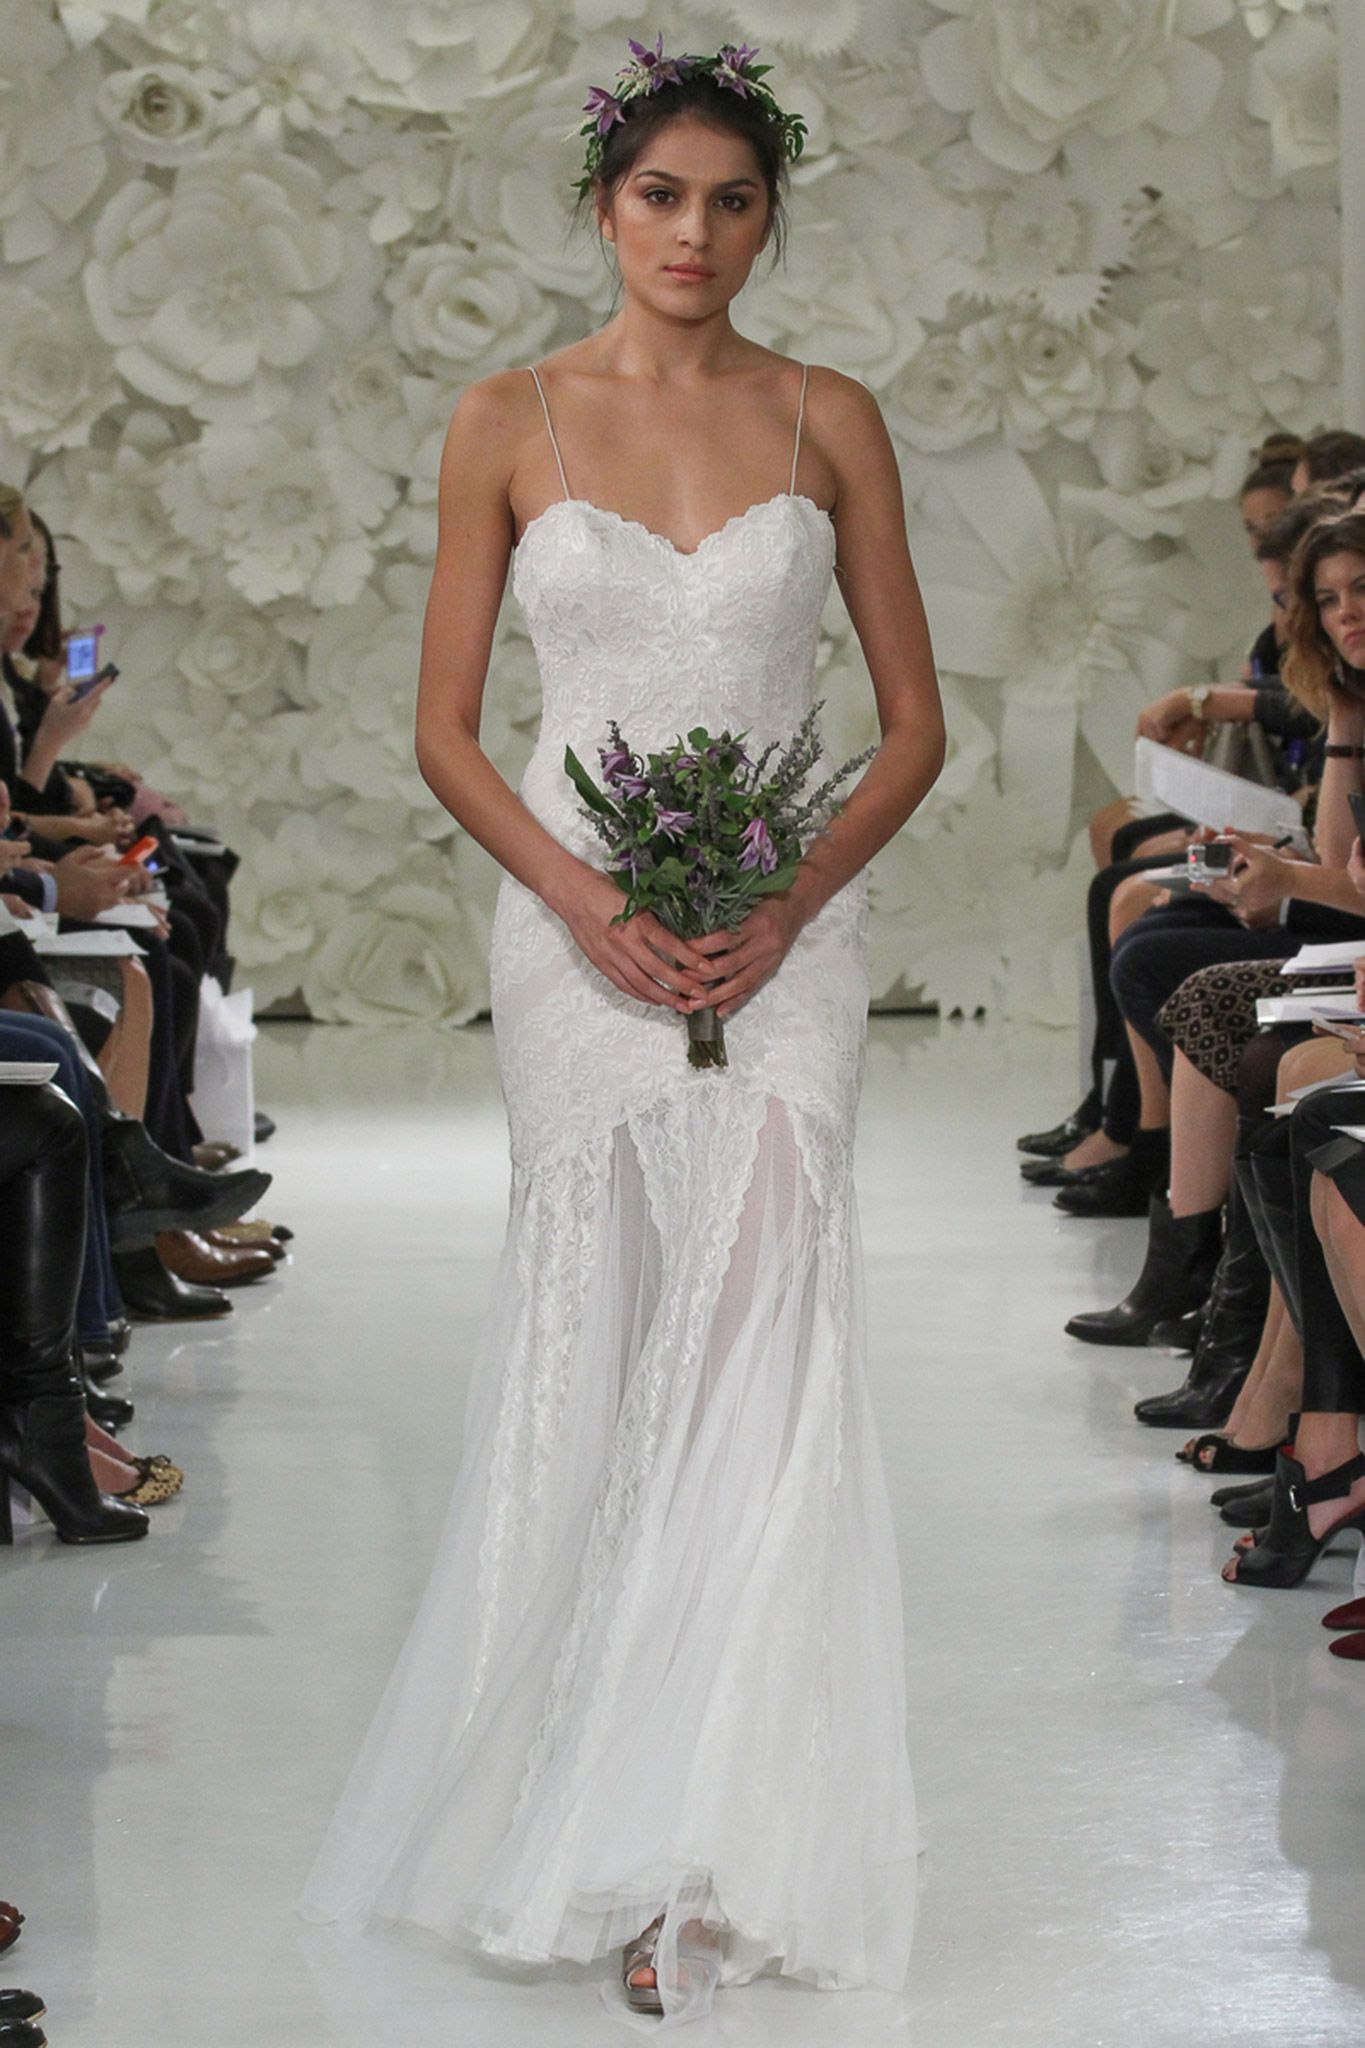 The biggest gown trends from the bridal runway shows gowns